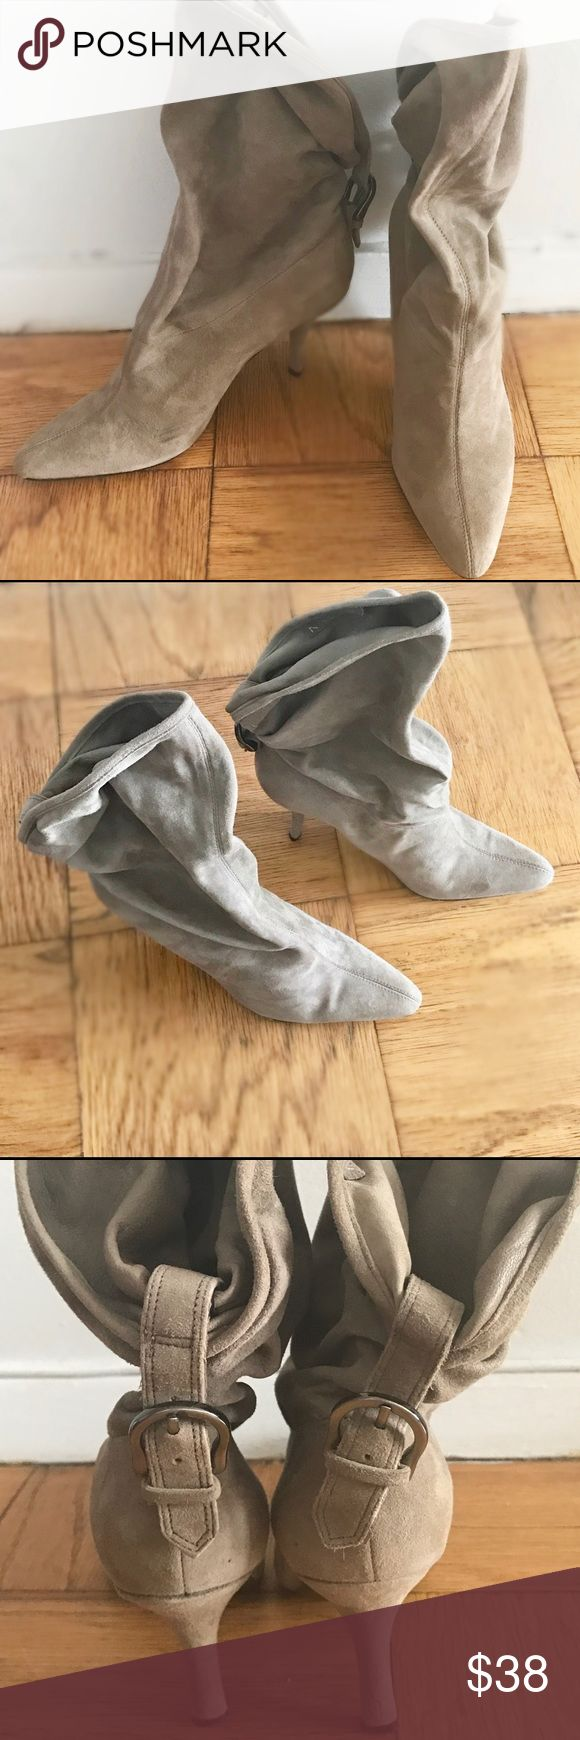 Genuine suede booties by Nine West. These adorable beige/cream colored booties are up for grabs!  Slouchy top, genuine suede, roughly 2 inch skinny heel.  May have been worn once, indoors (bottoms are squeaky clean as you can see!).  Perfect condition. Nine West Shoes Ankle Boots & Booties